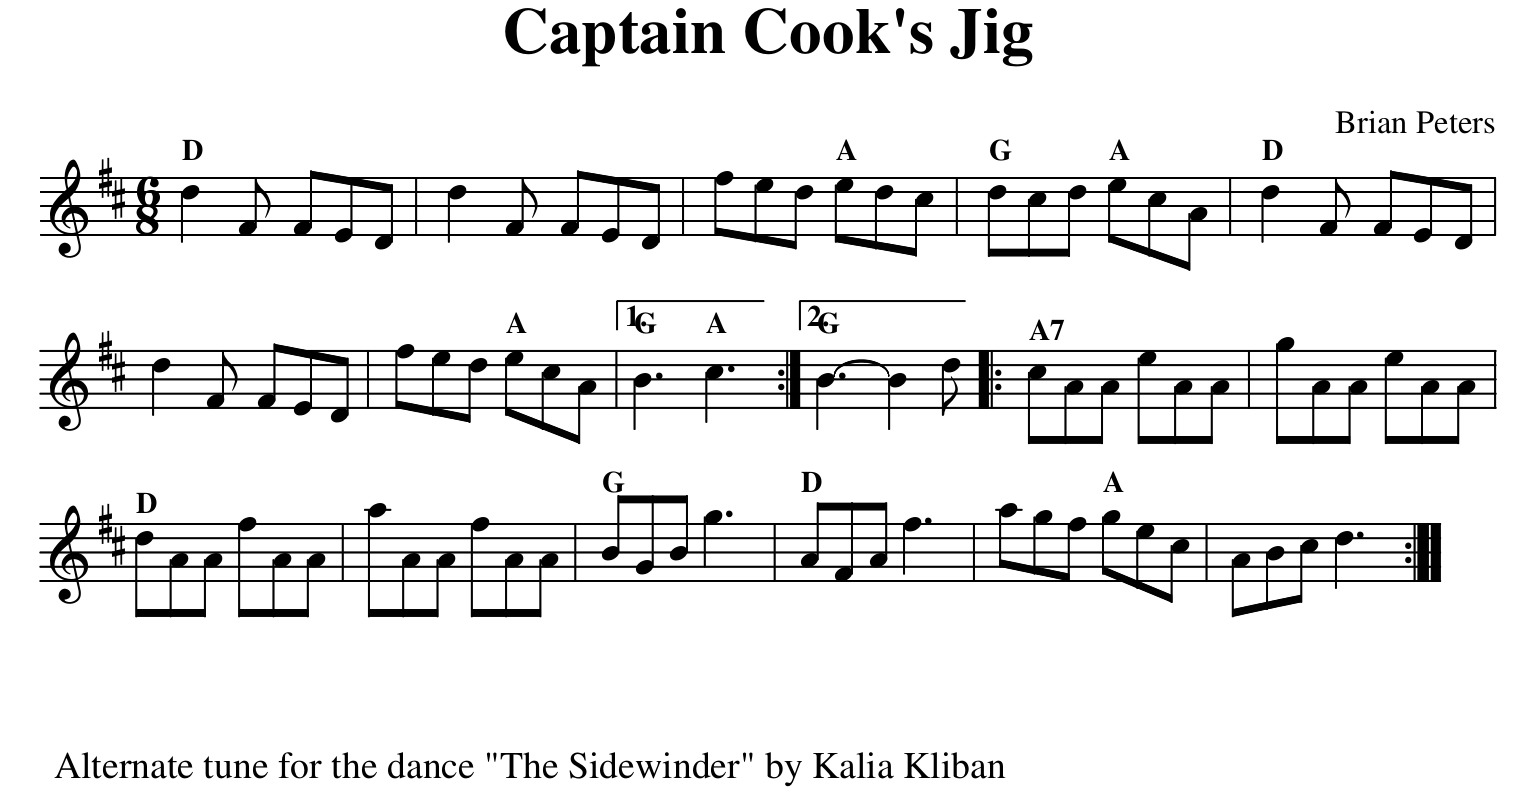 Captain Cook's Jig